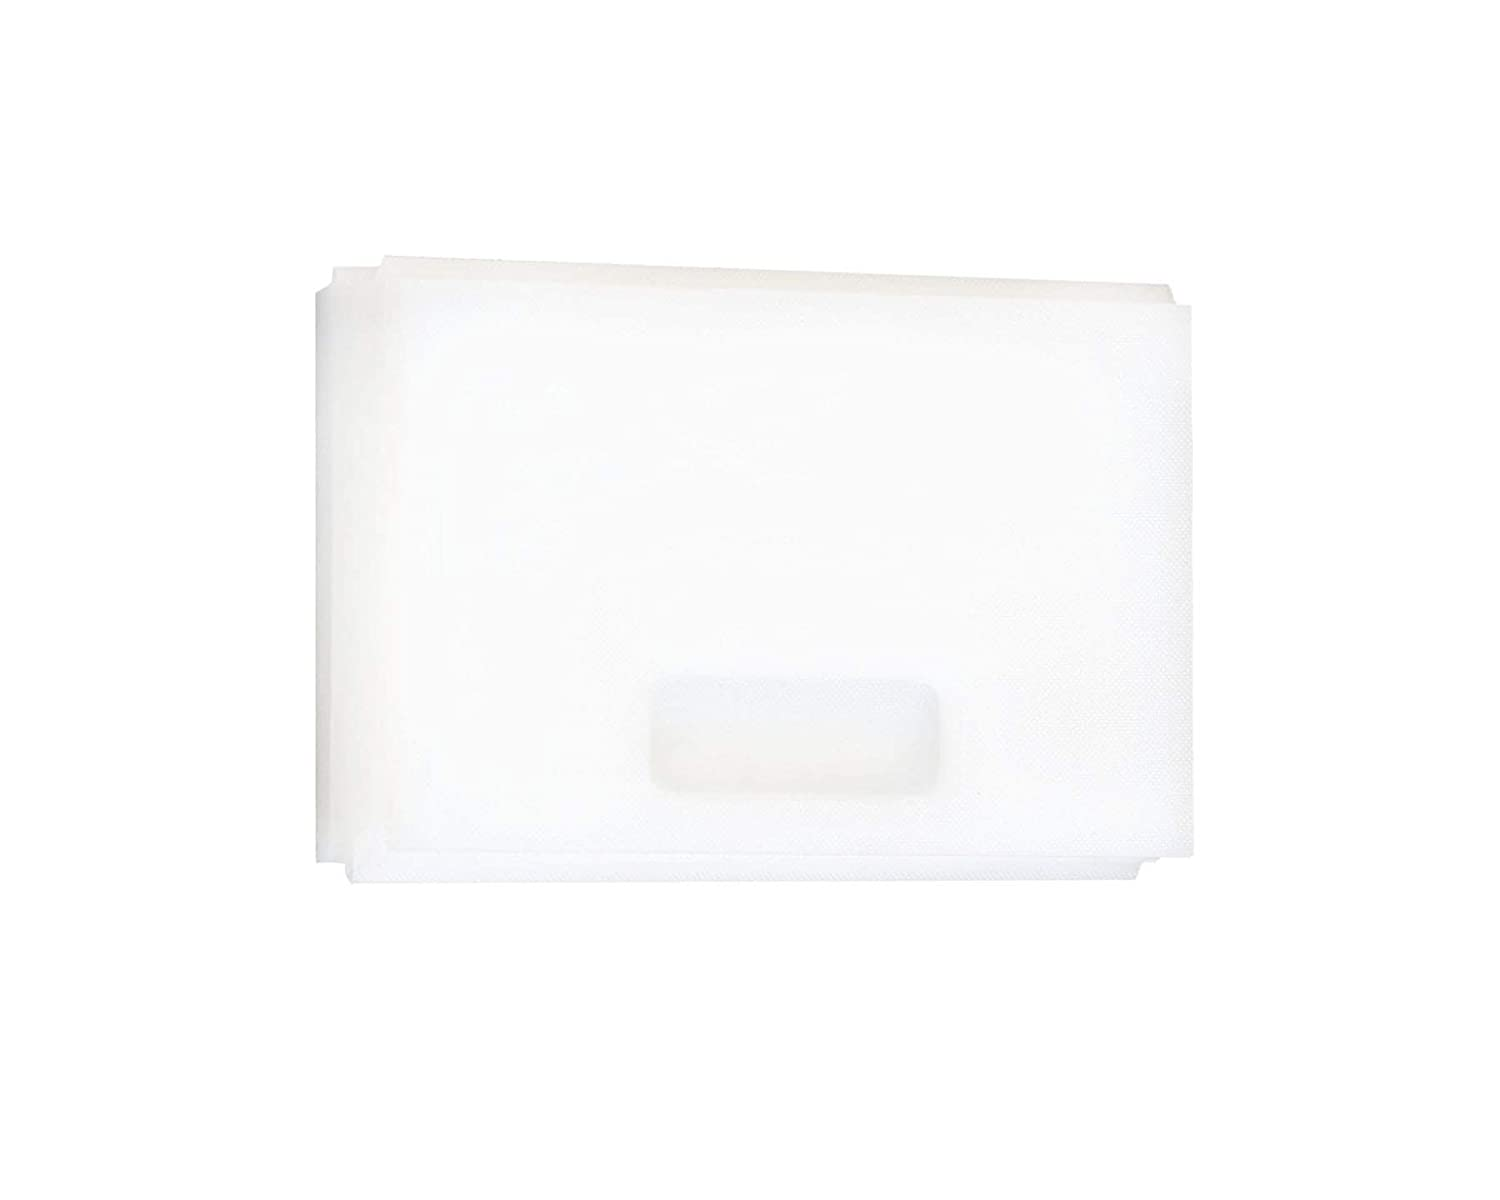 Small Ideal for Fishing Game or As Heavy Duty Kitchen Cutting Board White Organized Fishing 4-Fold Plastic Cutting Board 16 x 6 4FBCB-SM1